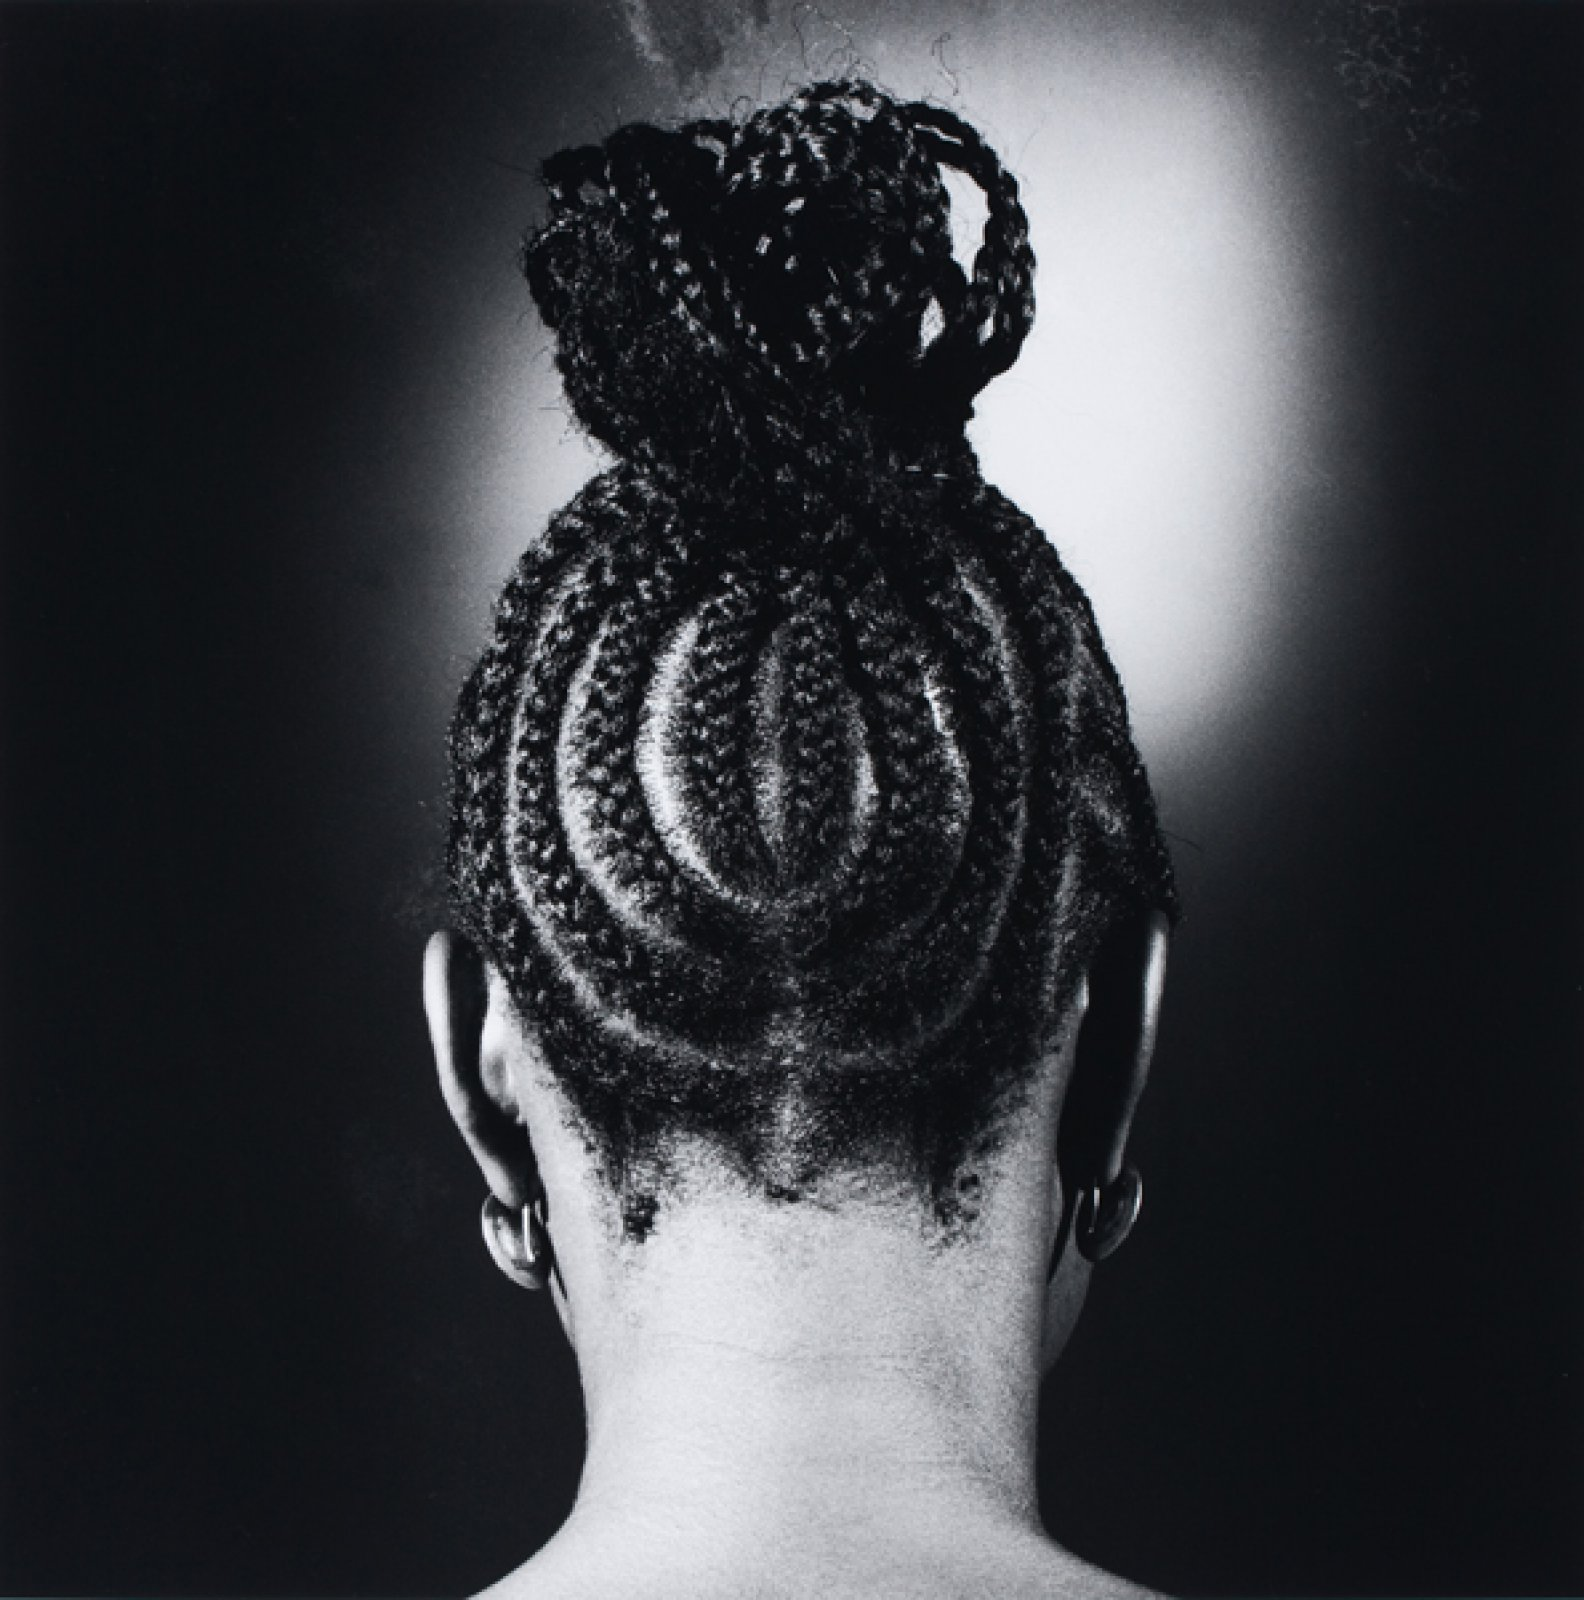 Untitled [Hairstyle], 1966-75 © J.D. 'Okhai Ojeikere. Courtesy The Walther Collection and Galerie Magnin-A, Paris .